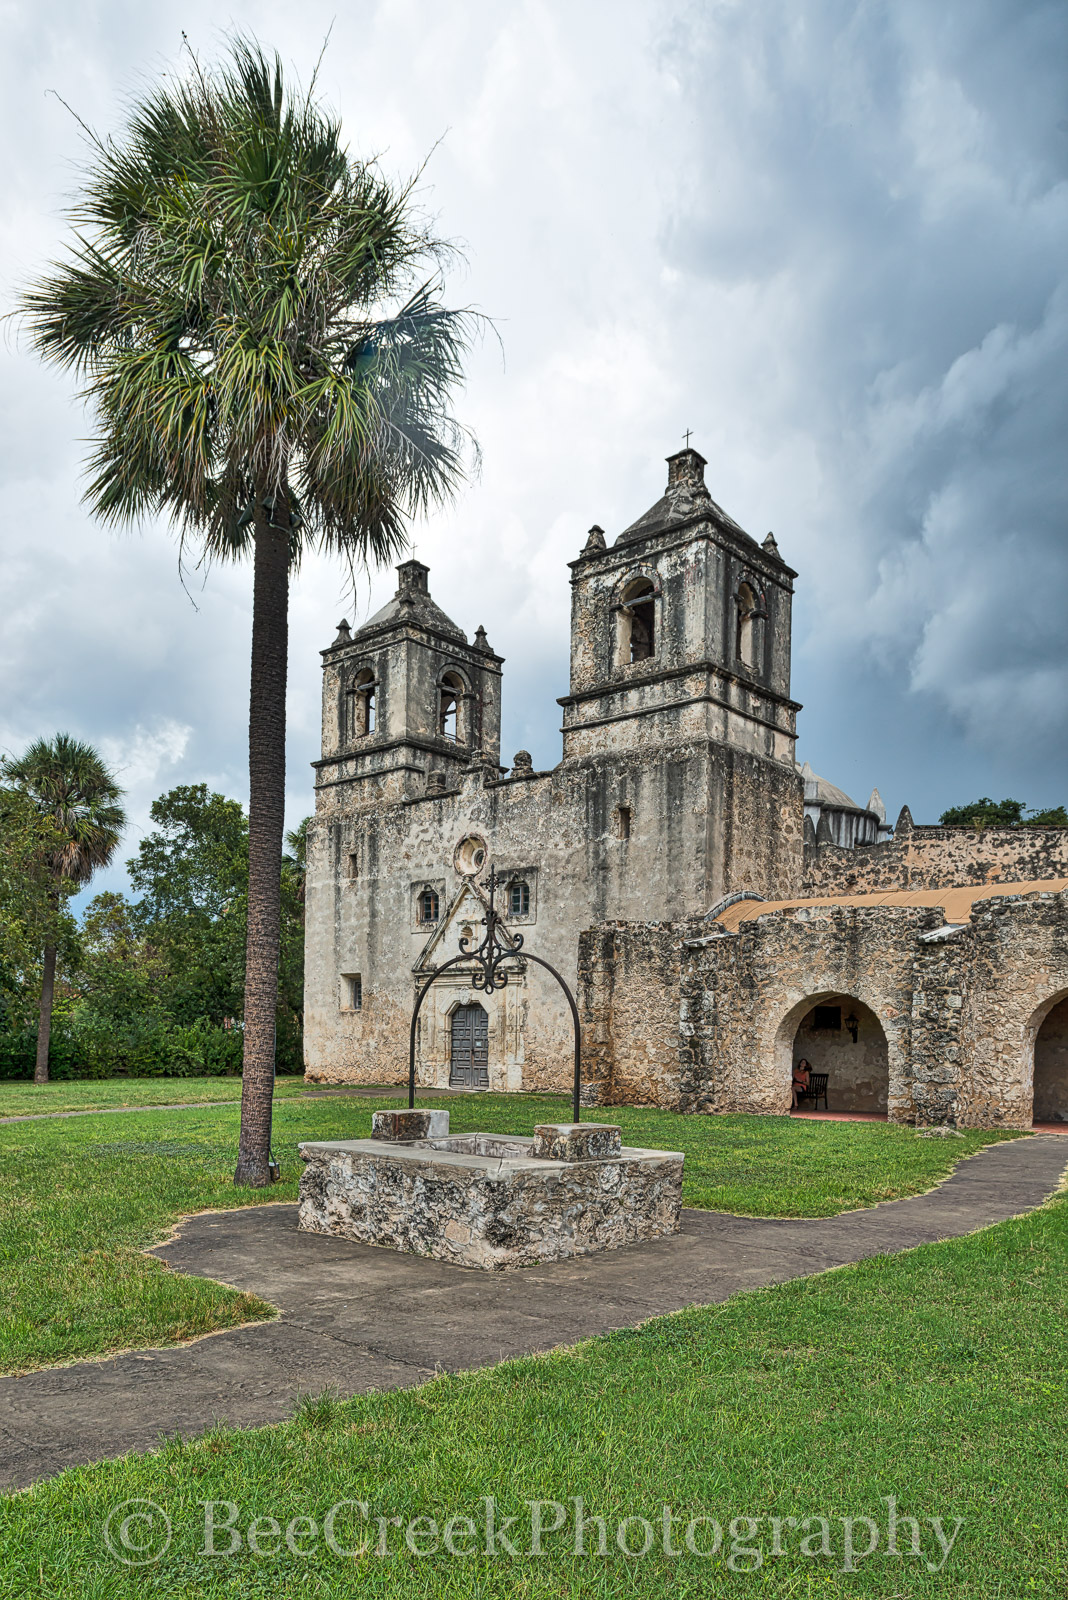 Battle of Concepcion, Mission ConcepciÛn, National Historic Landmarks, San Antonio, downtown, historic, indians, landmark, mexicans, spanish missions, texas missions, texians, world heritage site, photo